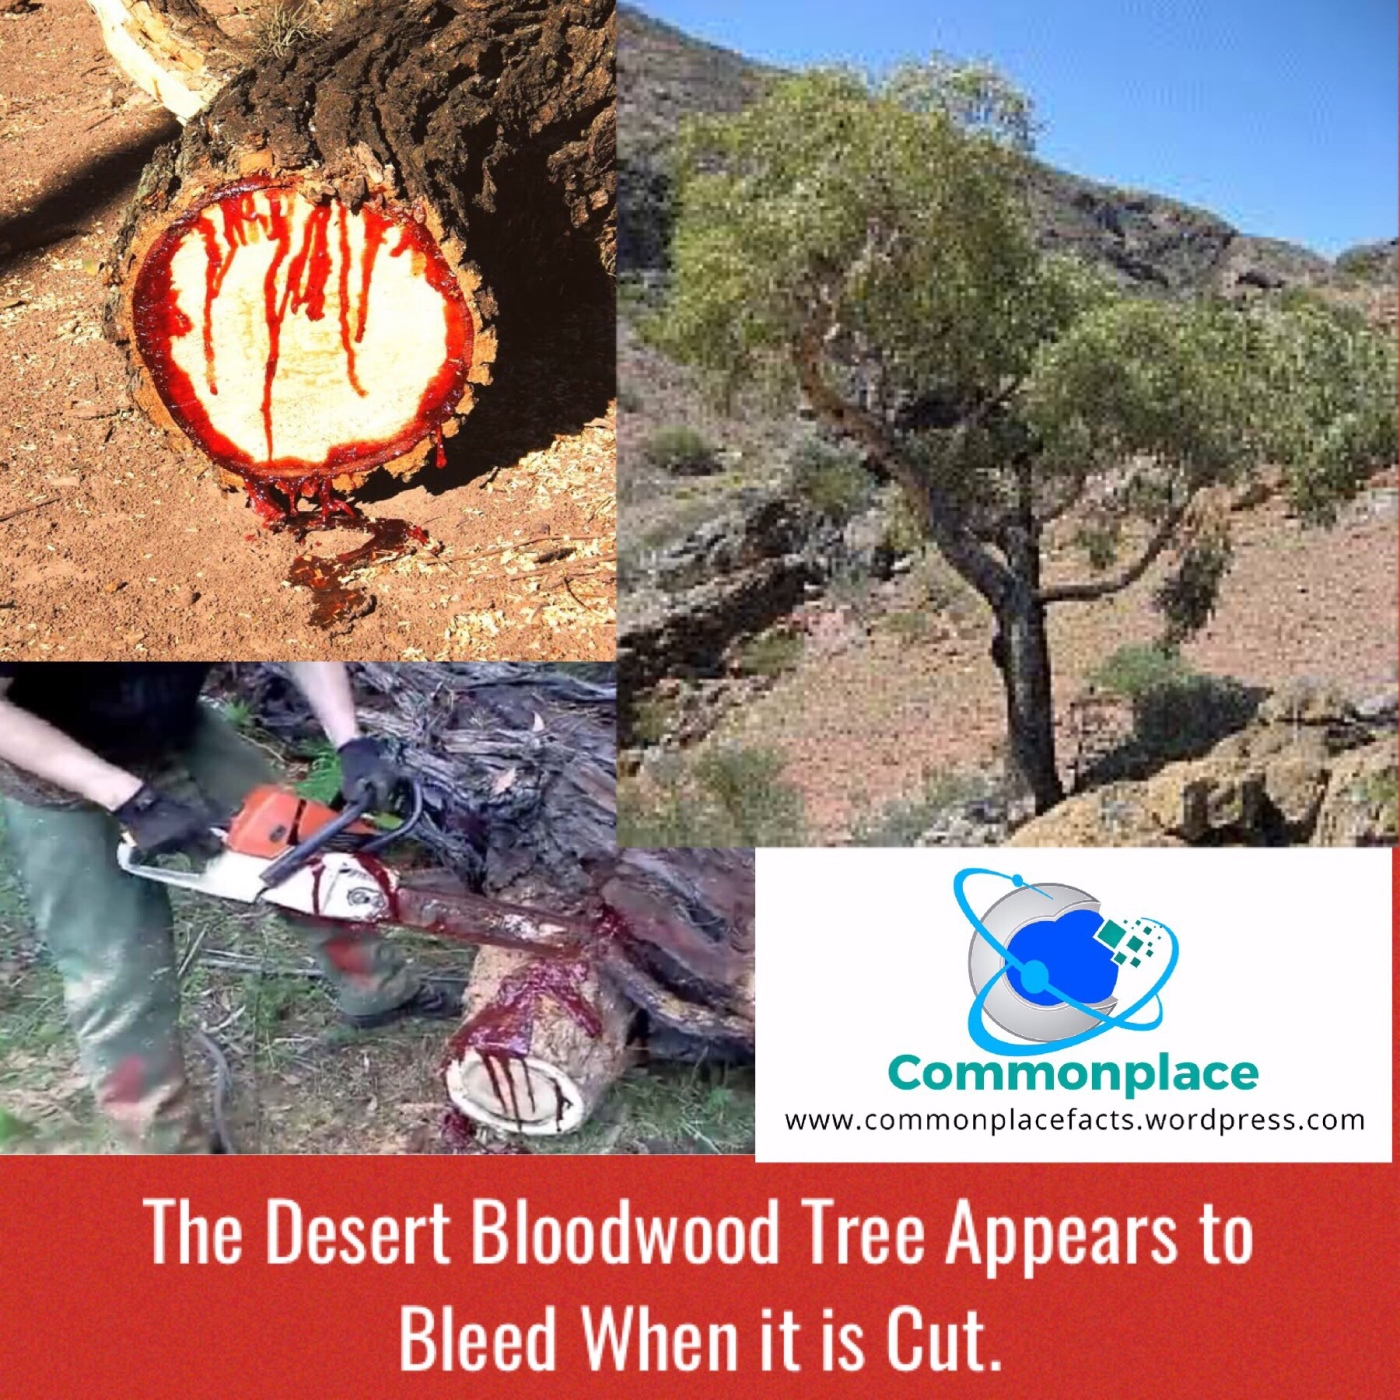 #bloodwood #blood #nature #trees #natureiscool